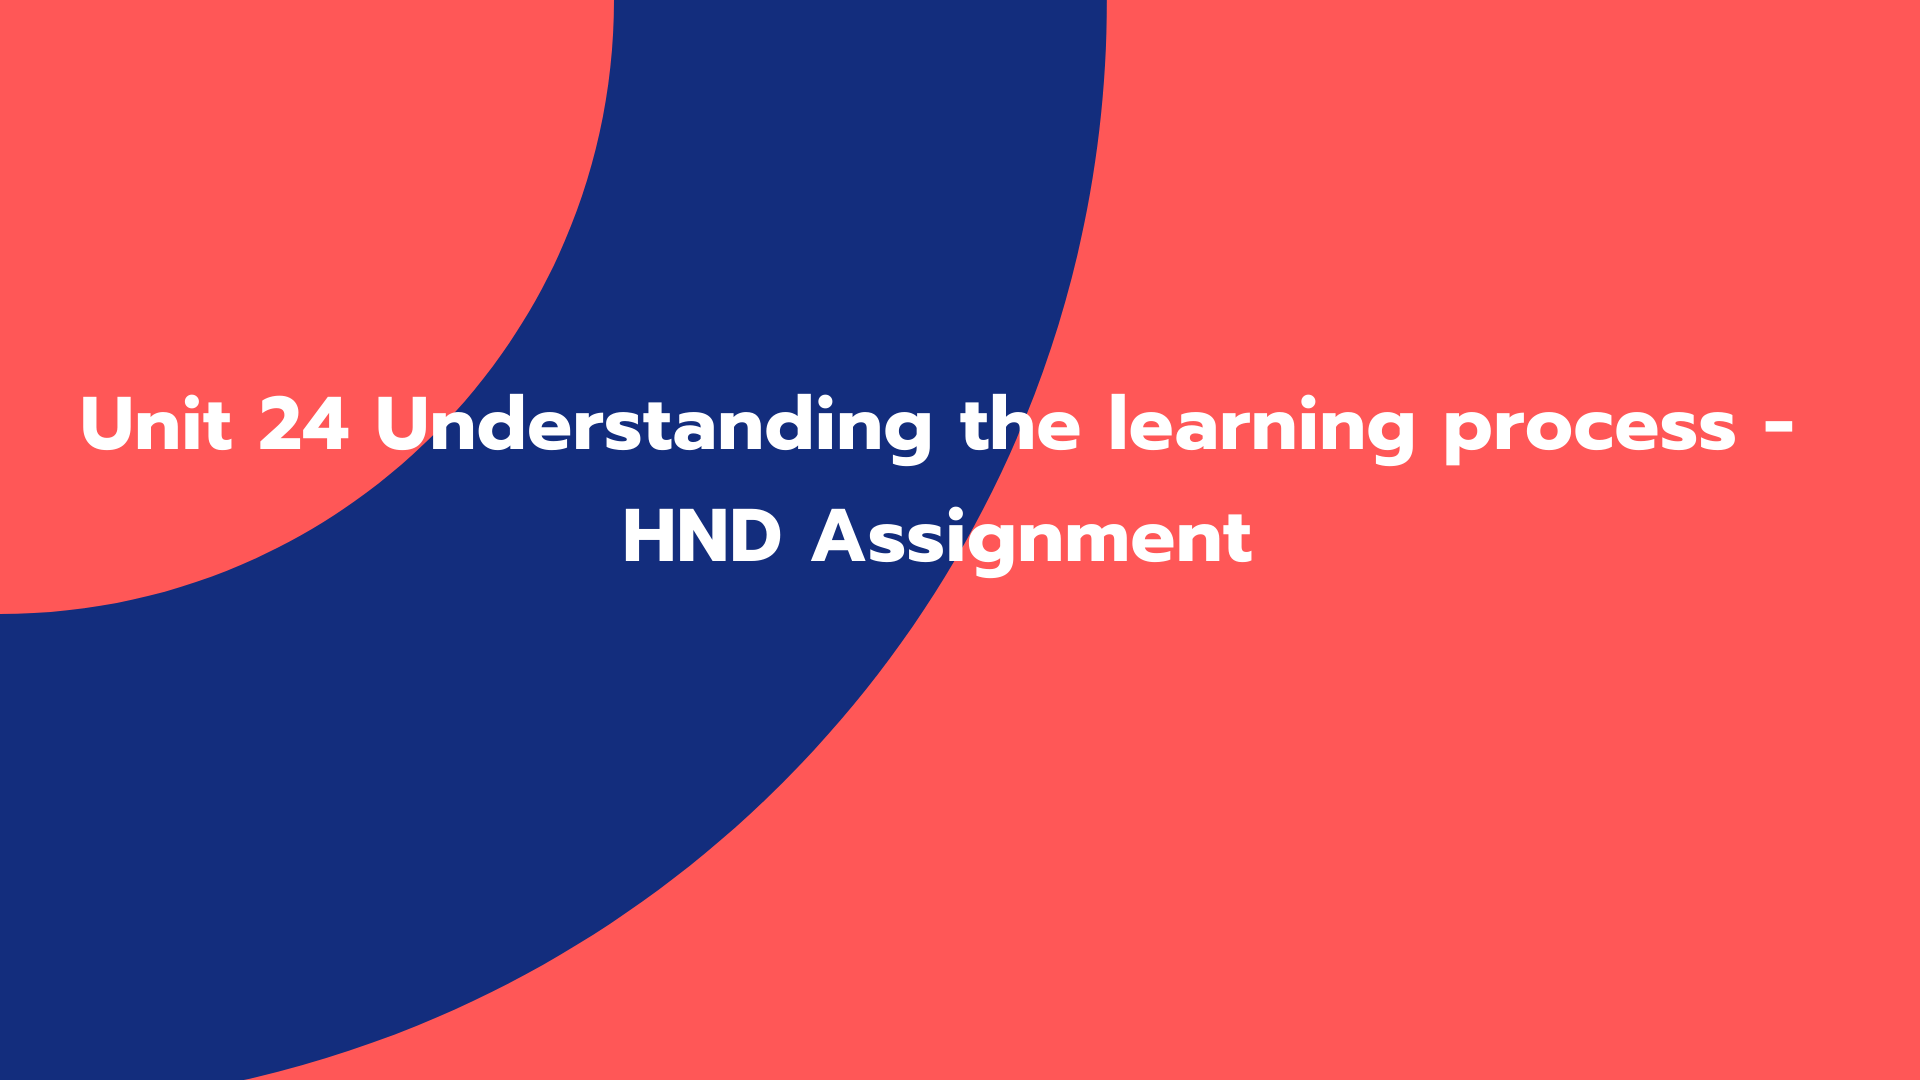 Unit 24 Understanding the learning process -HND Assignment